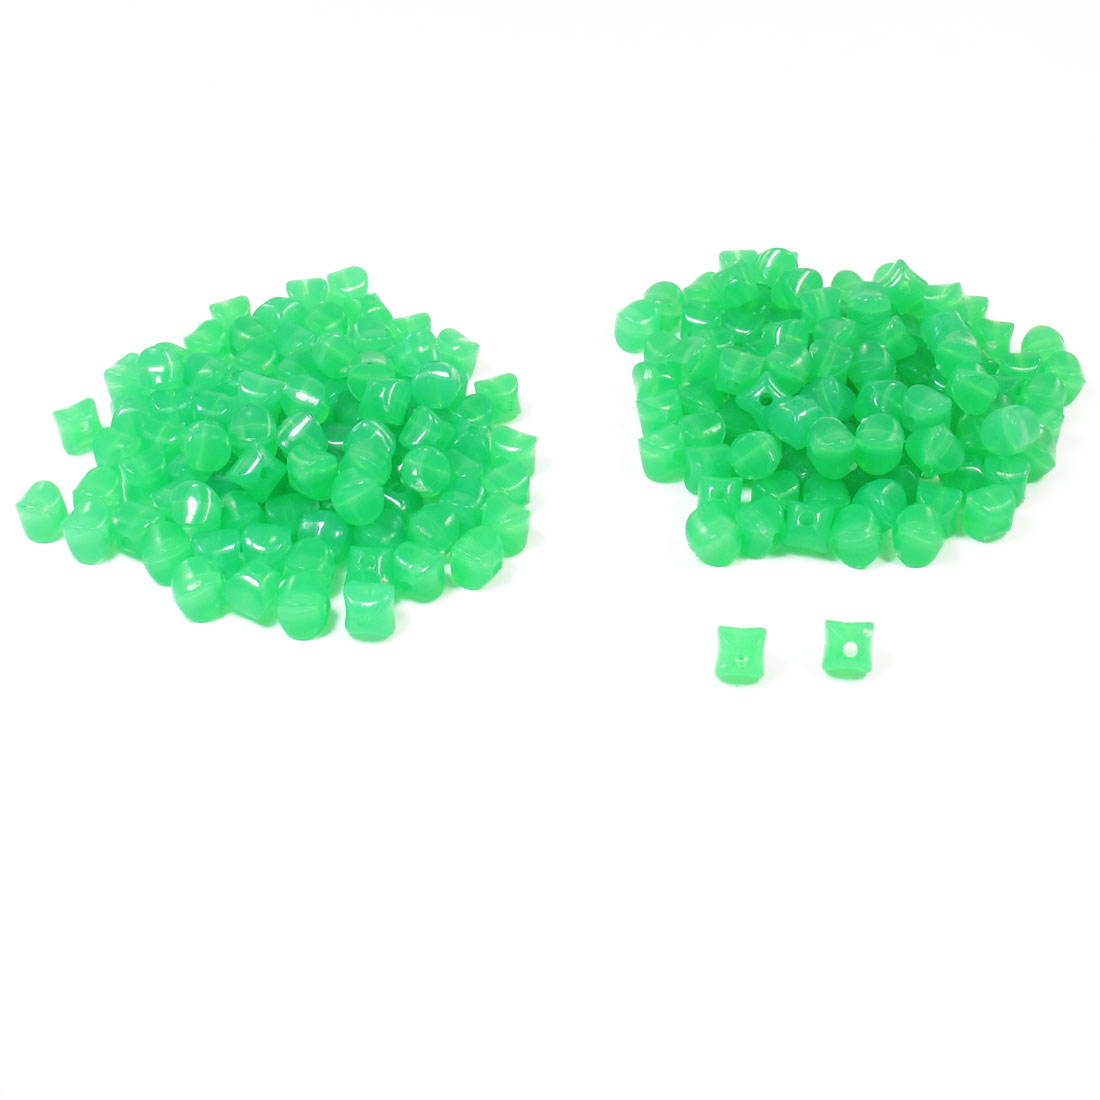 Jewelry Findings Green Plastic Star Design Jelly Beads 190 Pcs